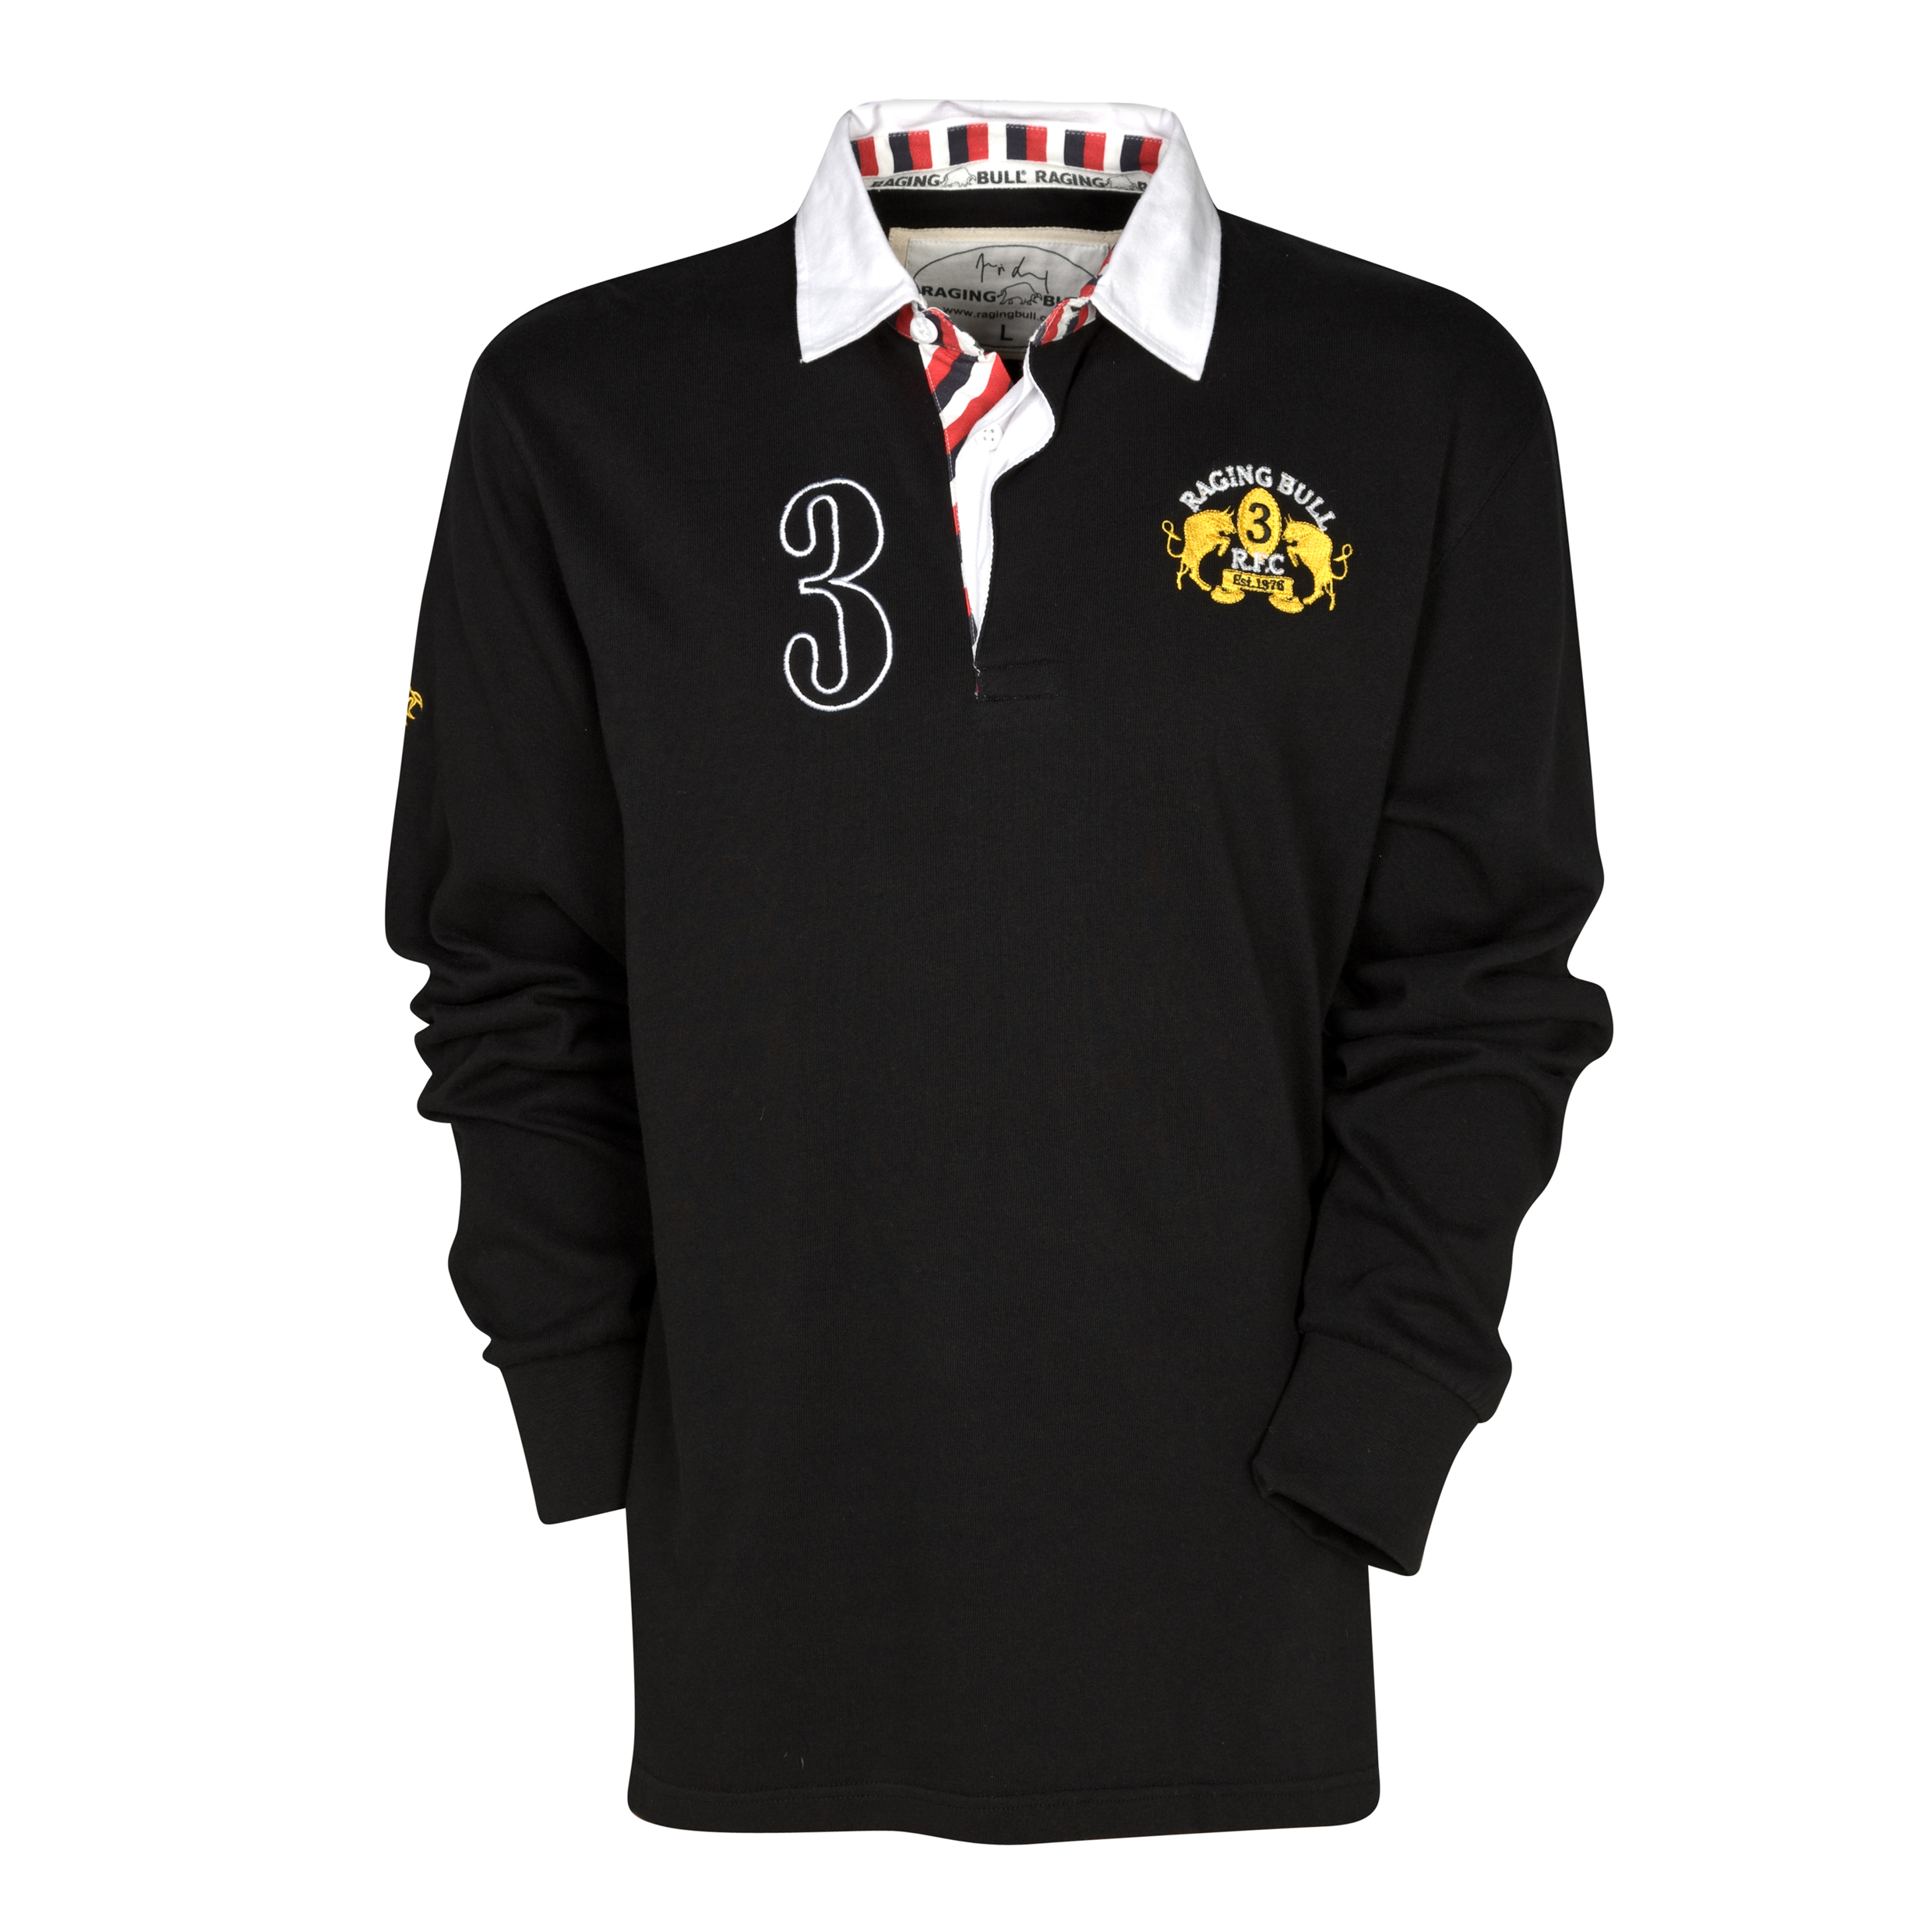 Raging Bull Signature Rugby Jersey - Black